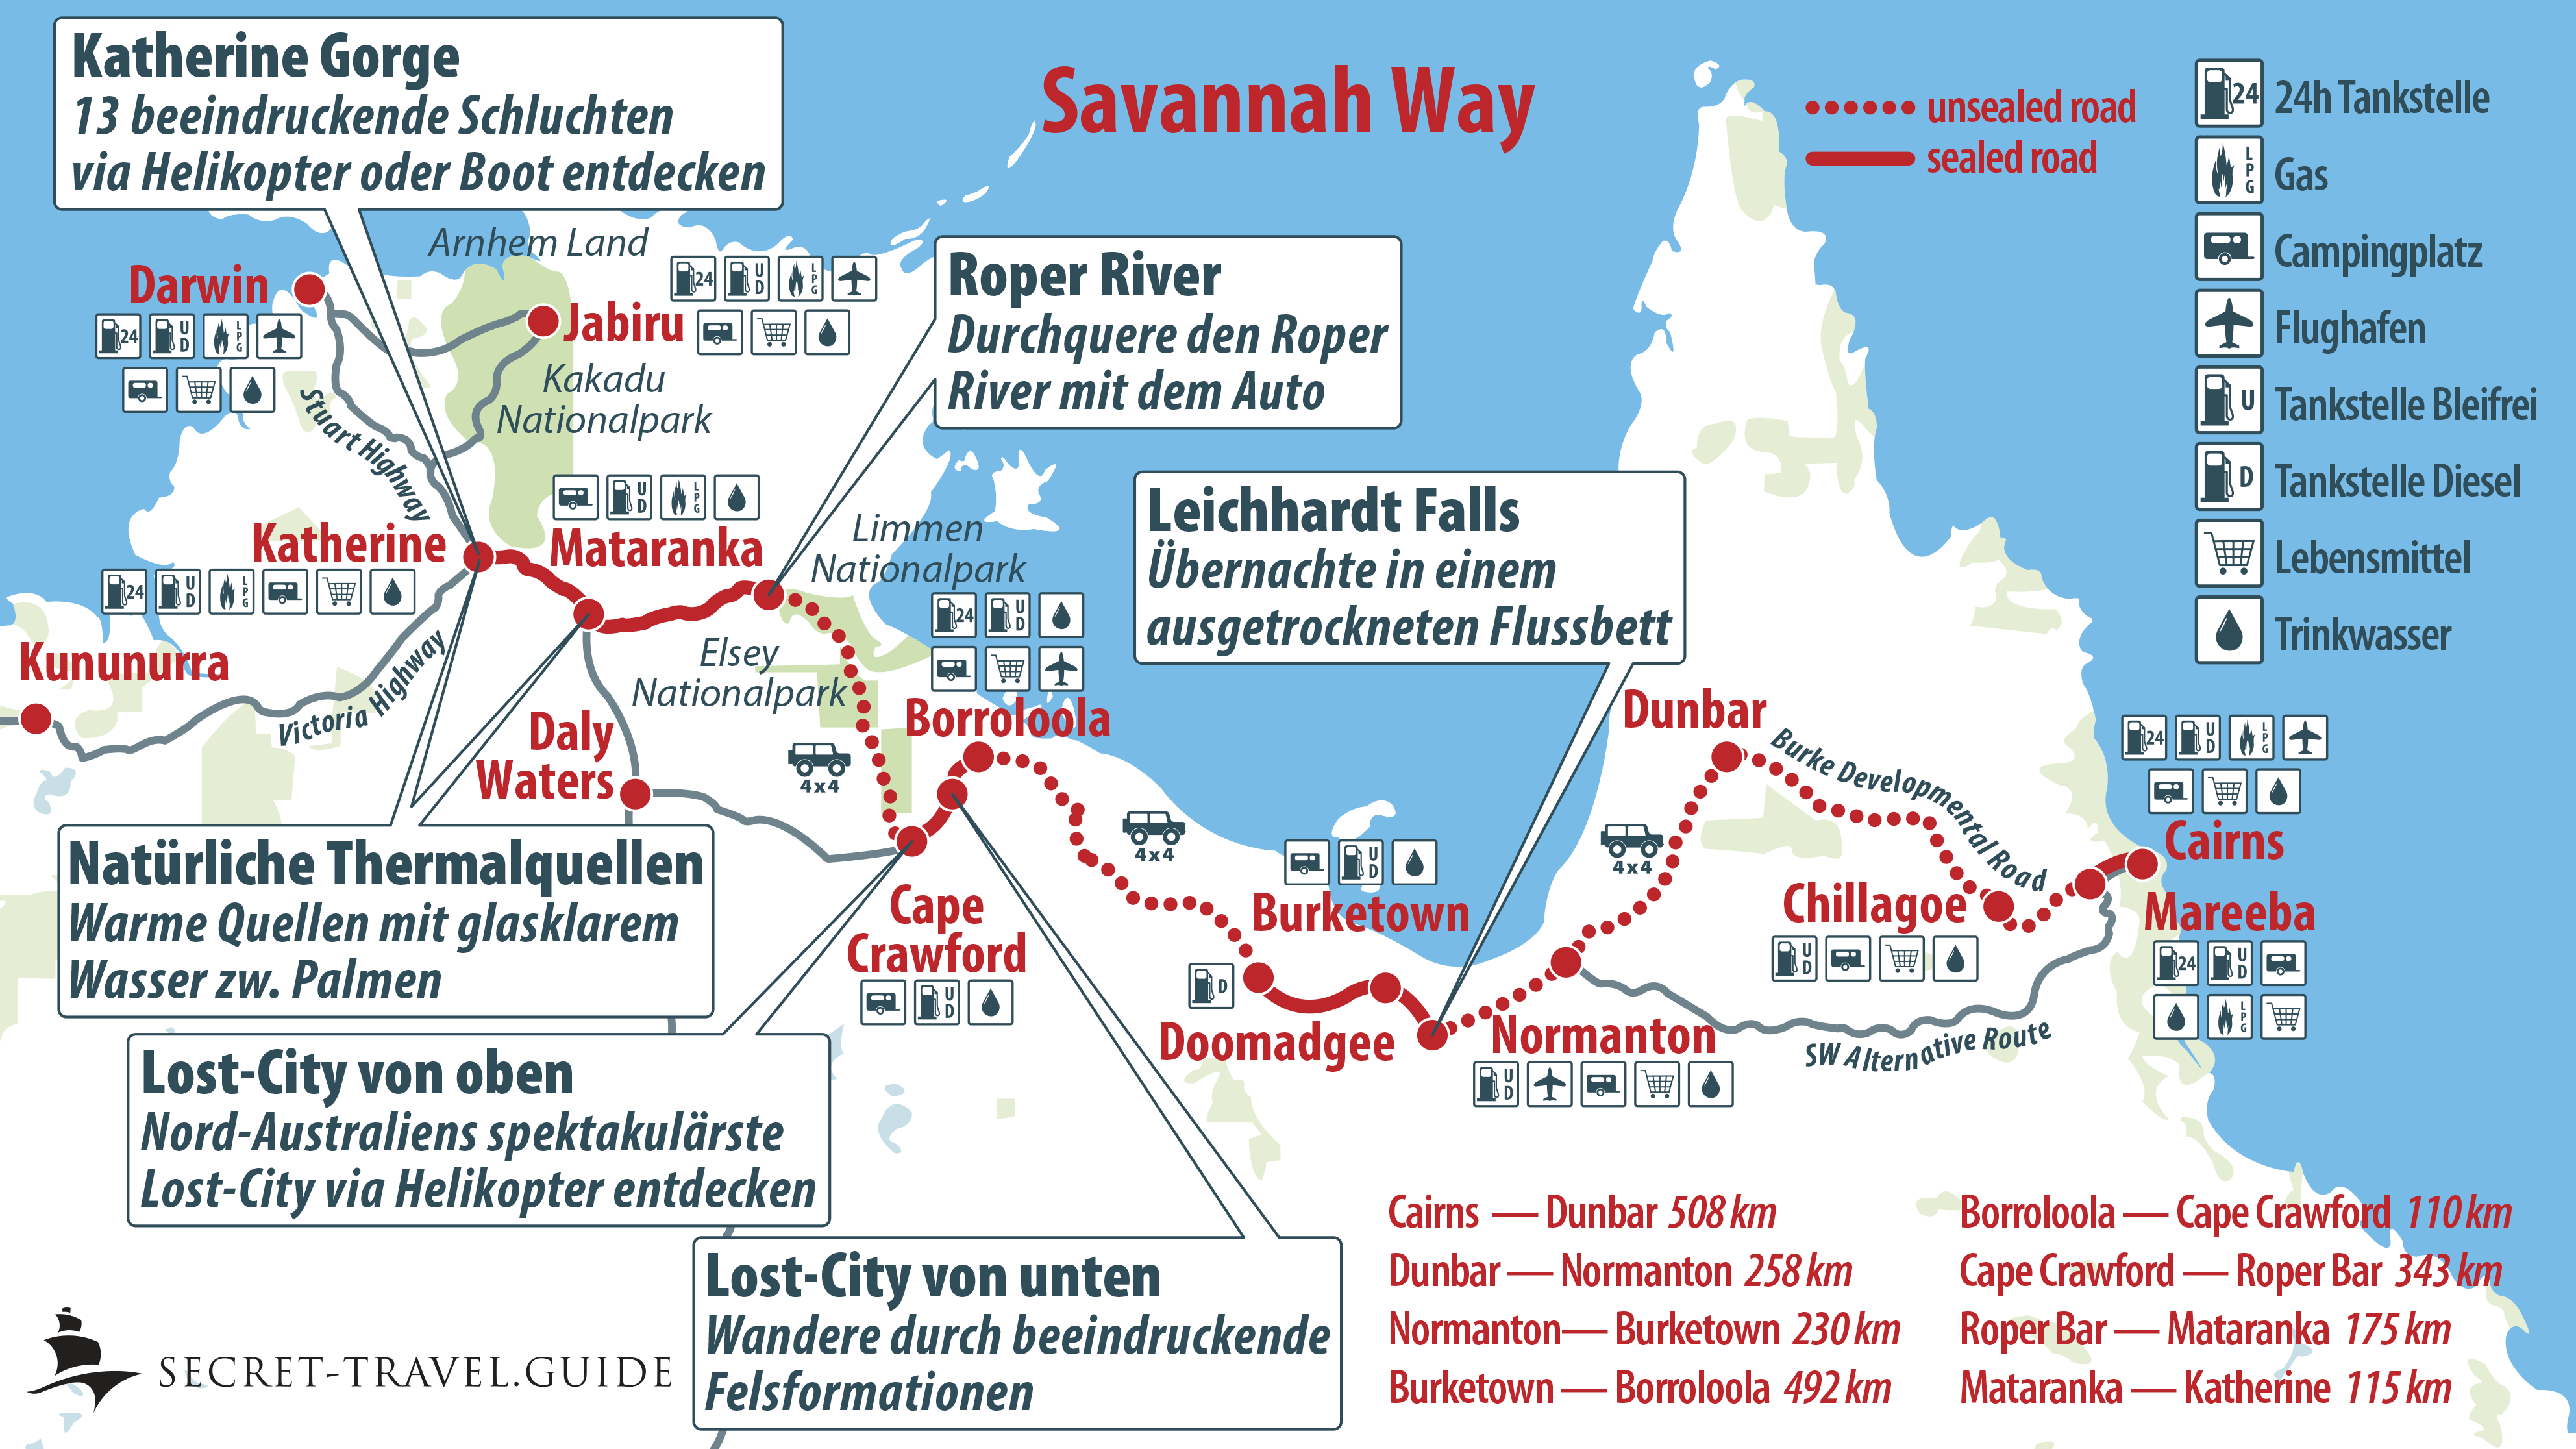 Savannah Way - von Cairns nach Katherine — secret-travel.guide